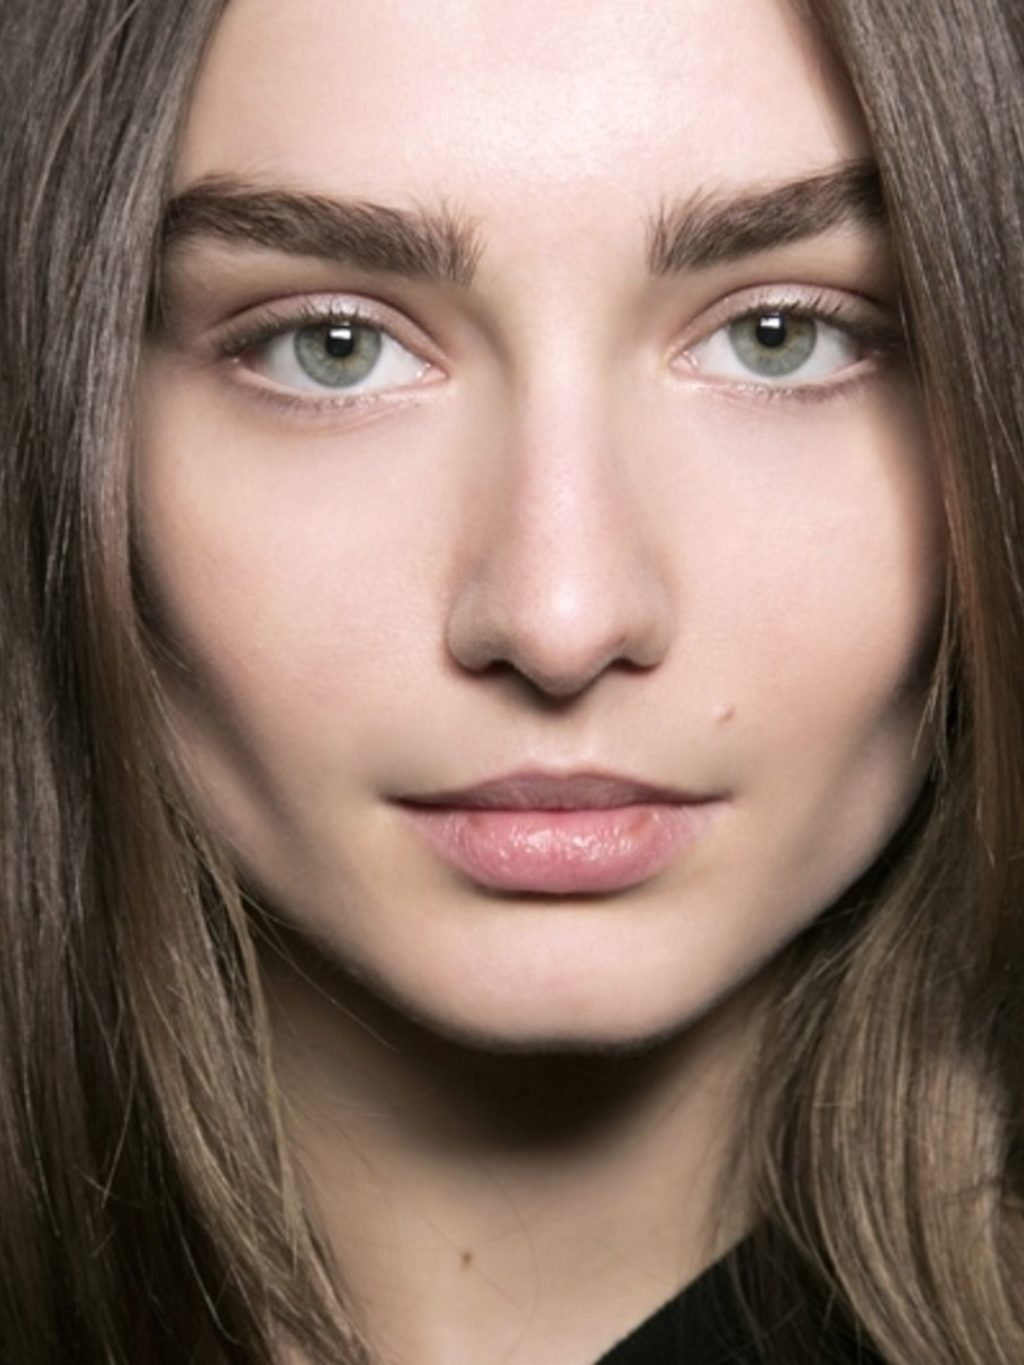 woman with strong defined eyebrows and cheekbones.